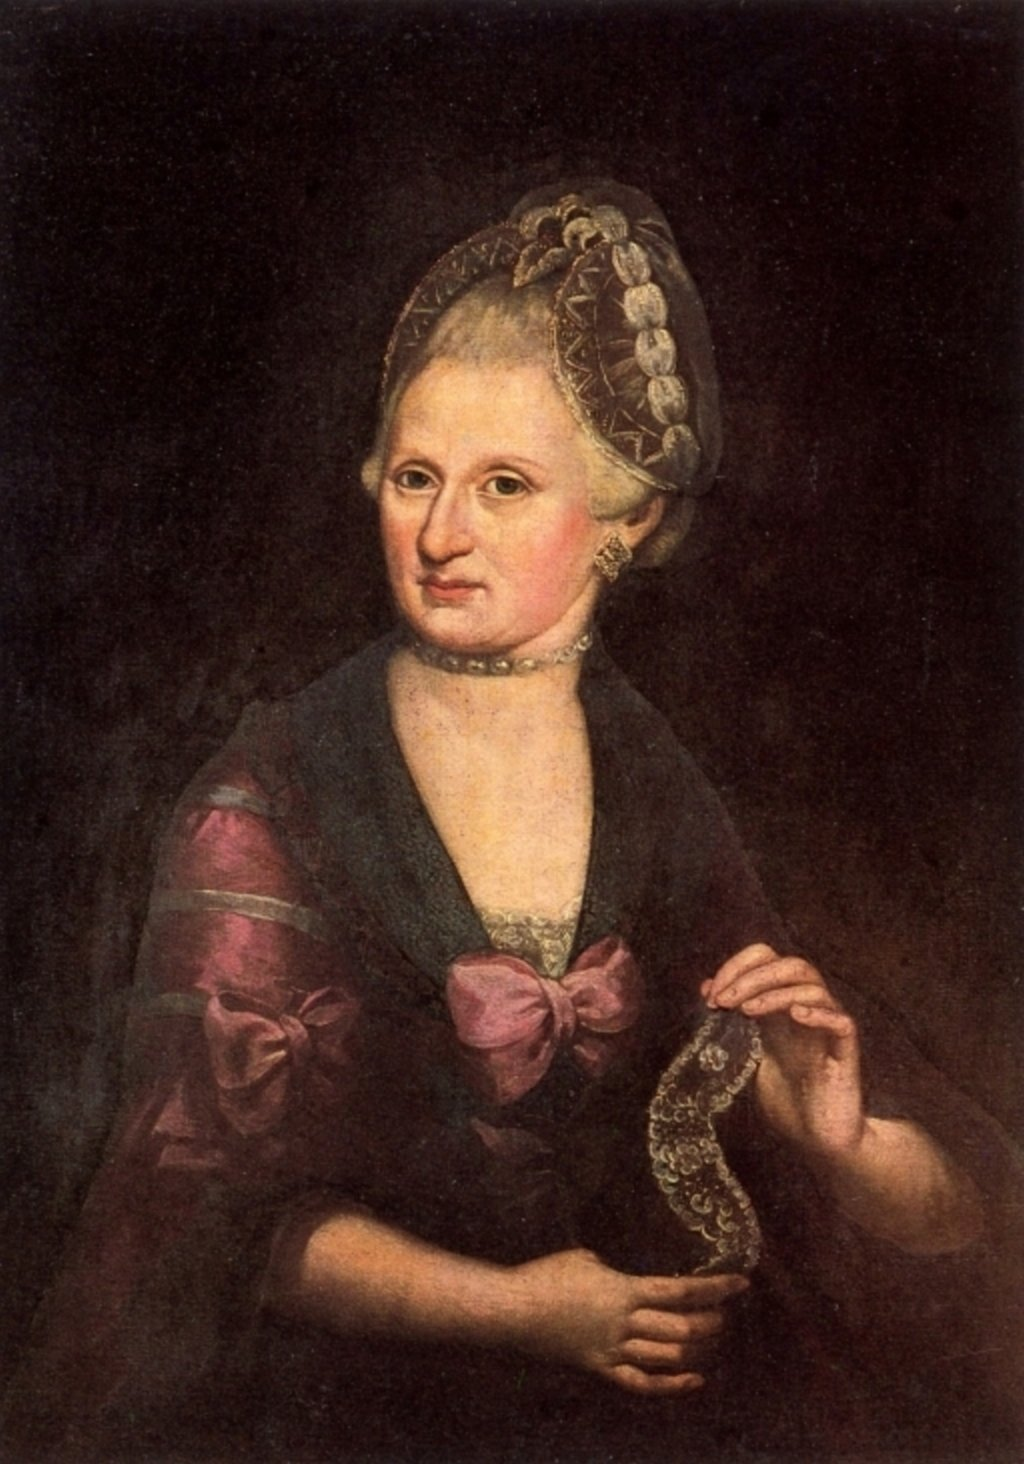 https://upload.wikimedia.org/wikipedia/commons/7/78/Anna_Maria_Mozart.jpg